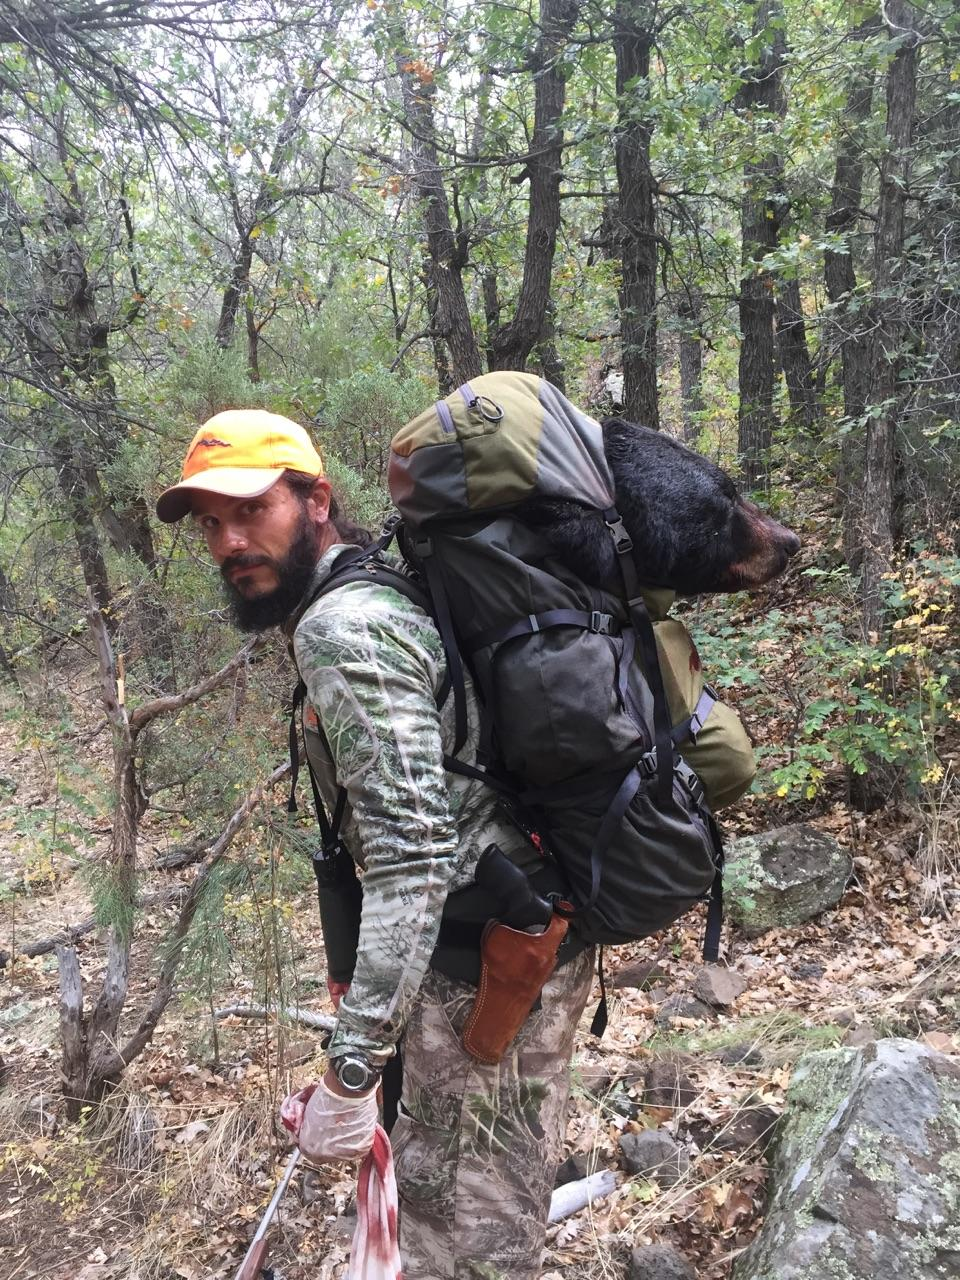 Kuiu Icon Pro 5200 Review - Dialed In Hunter